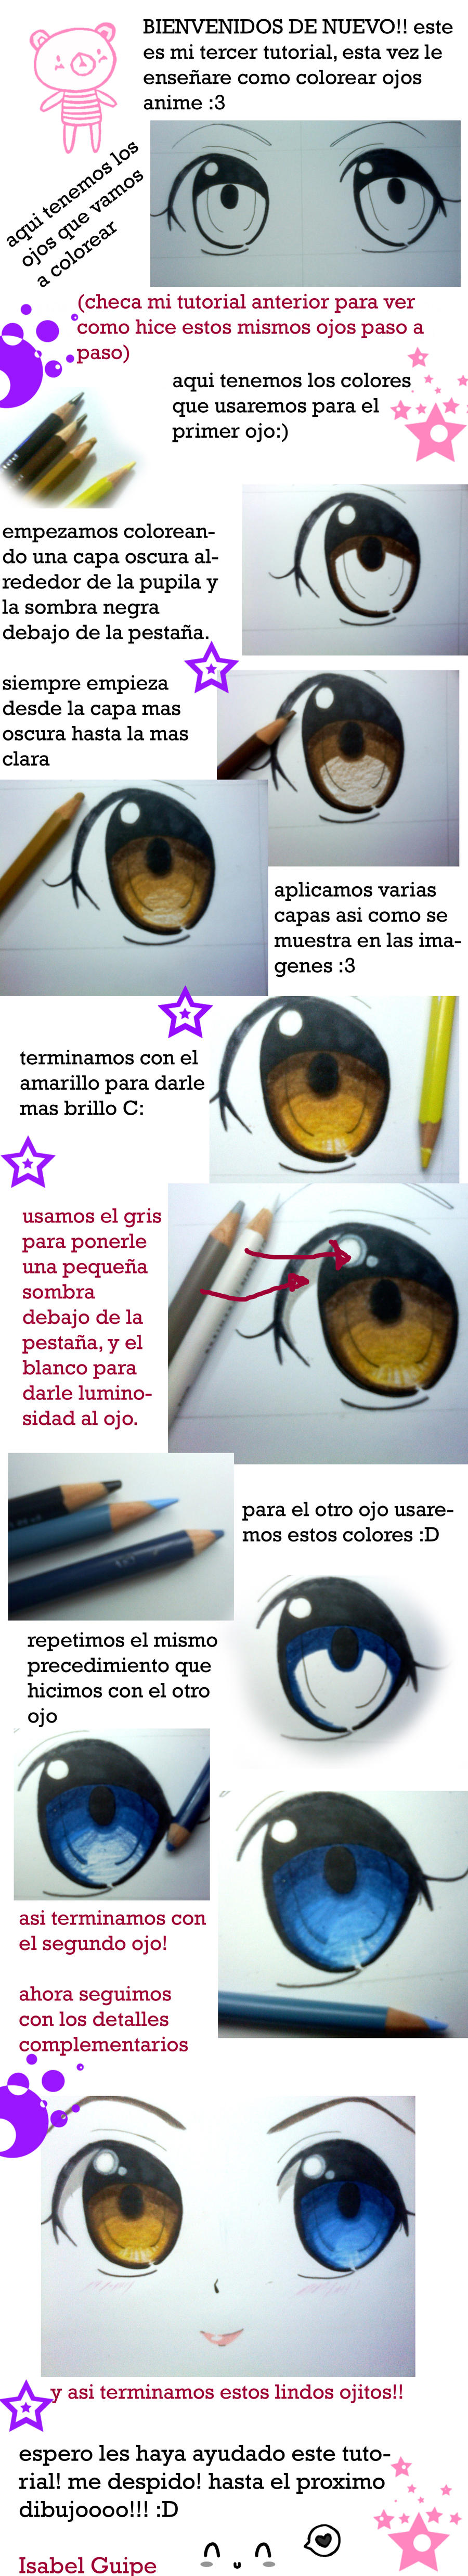 tutorial coloreando ojos anime by fresitarubia